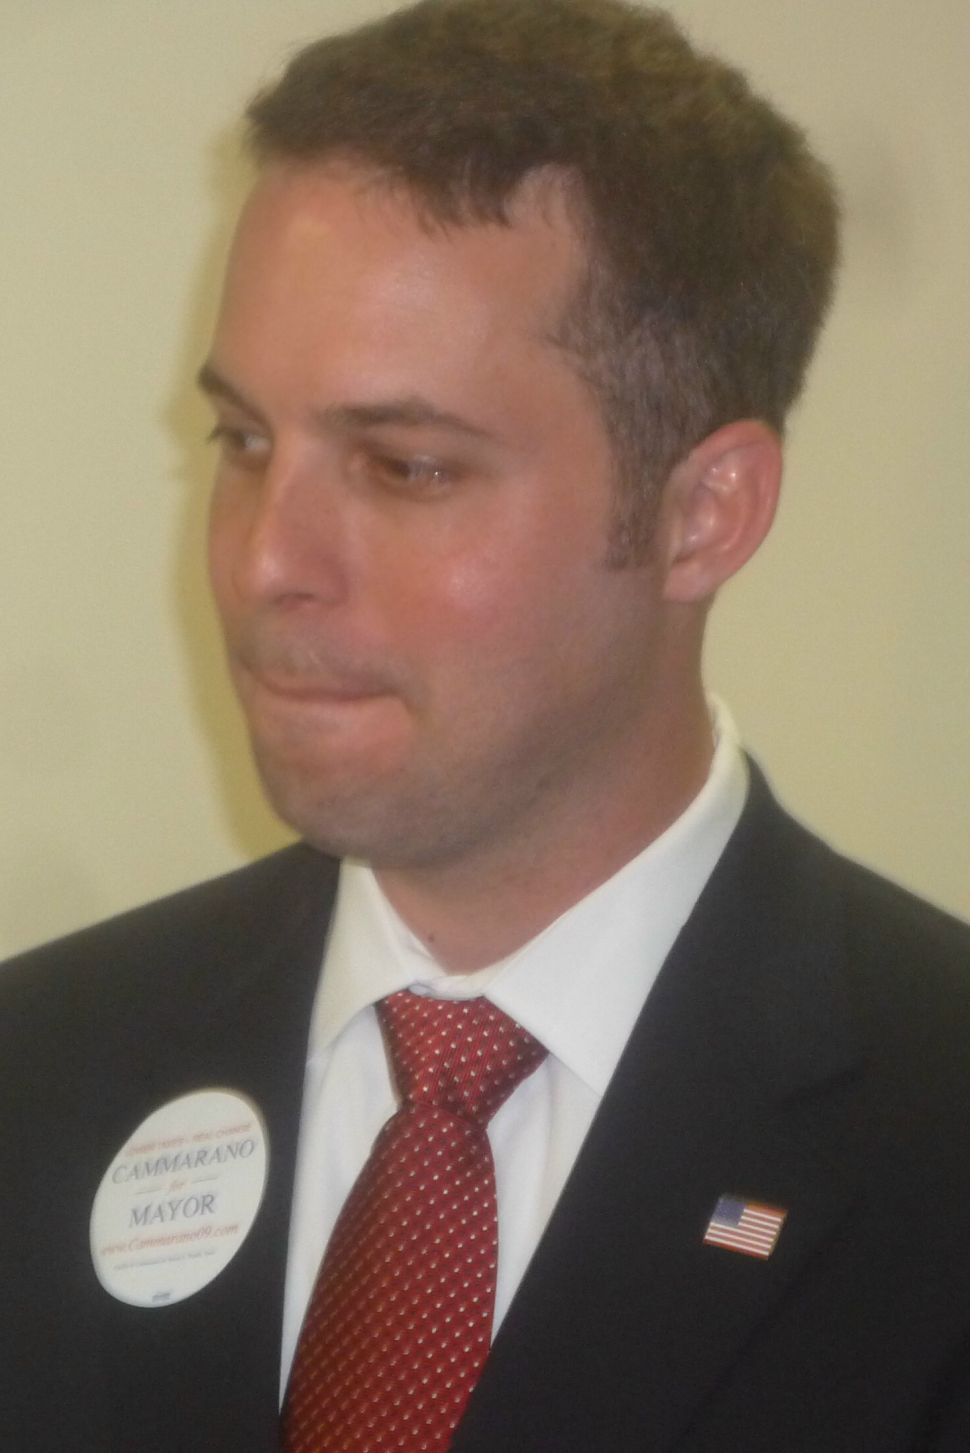 Cammarano hits back with endorsements by Mason's two former running mates